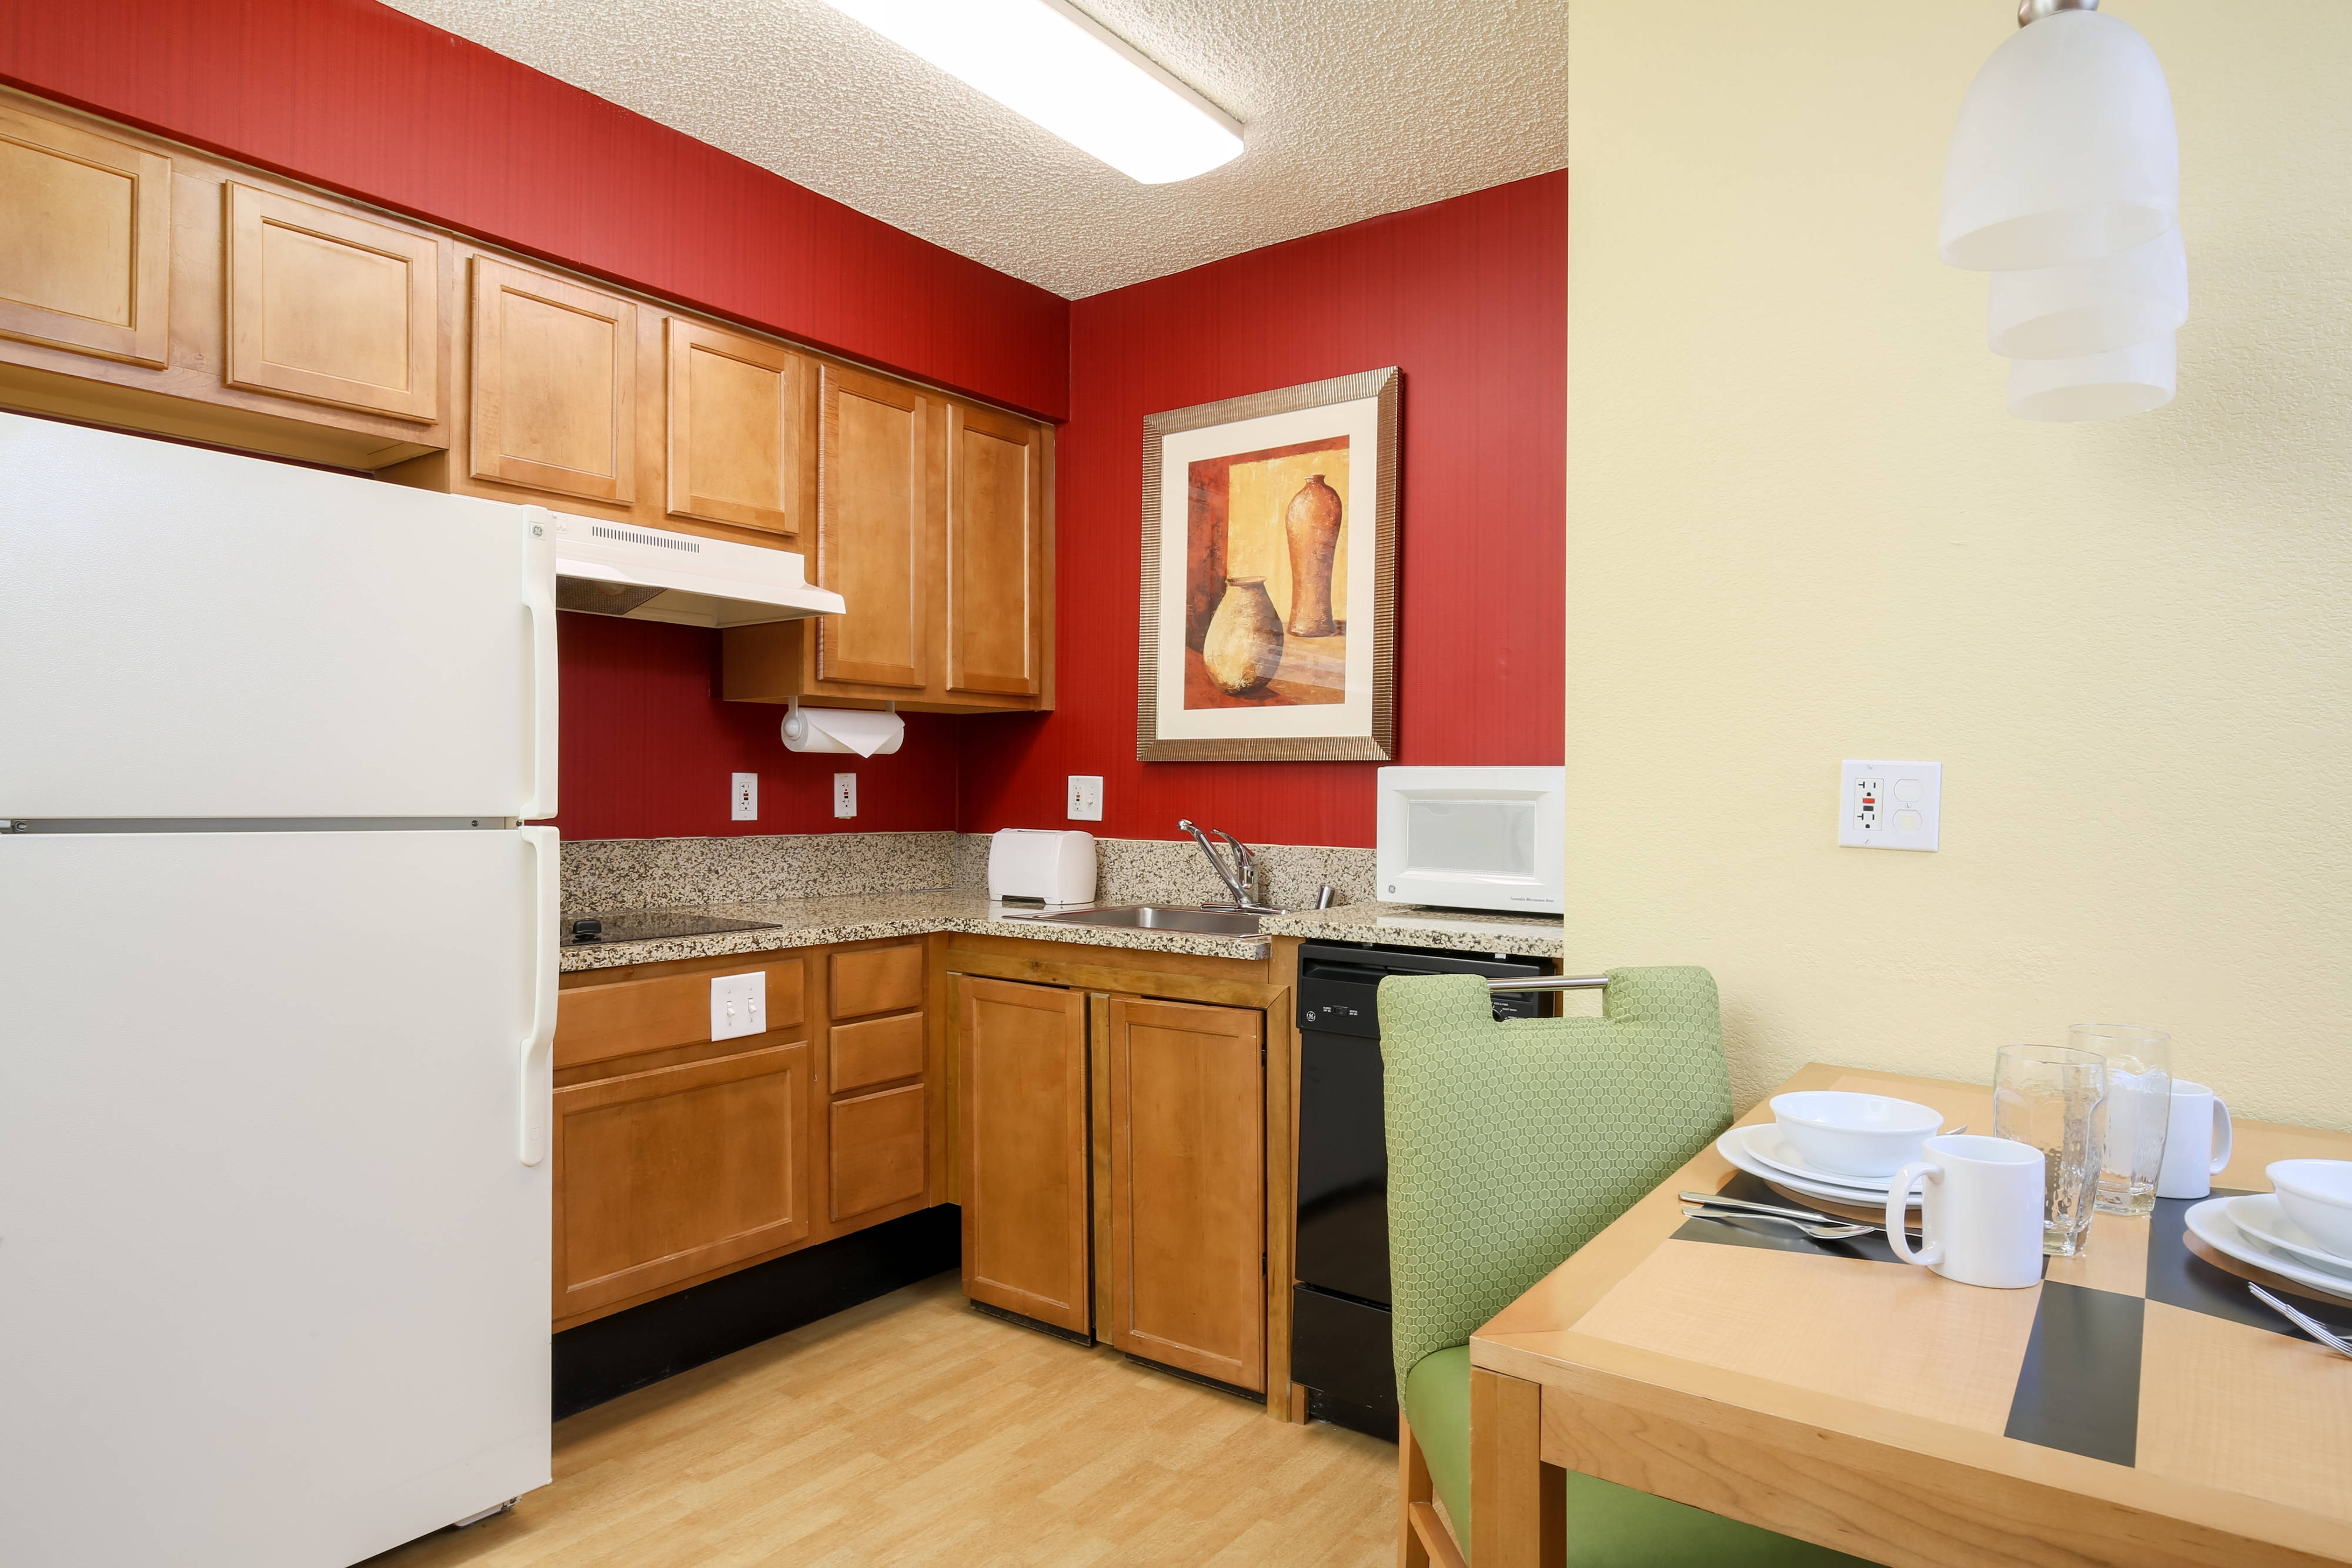 Albuquerque Hotel Accessible Suite Kitchen